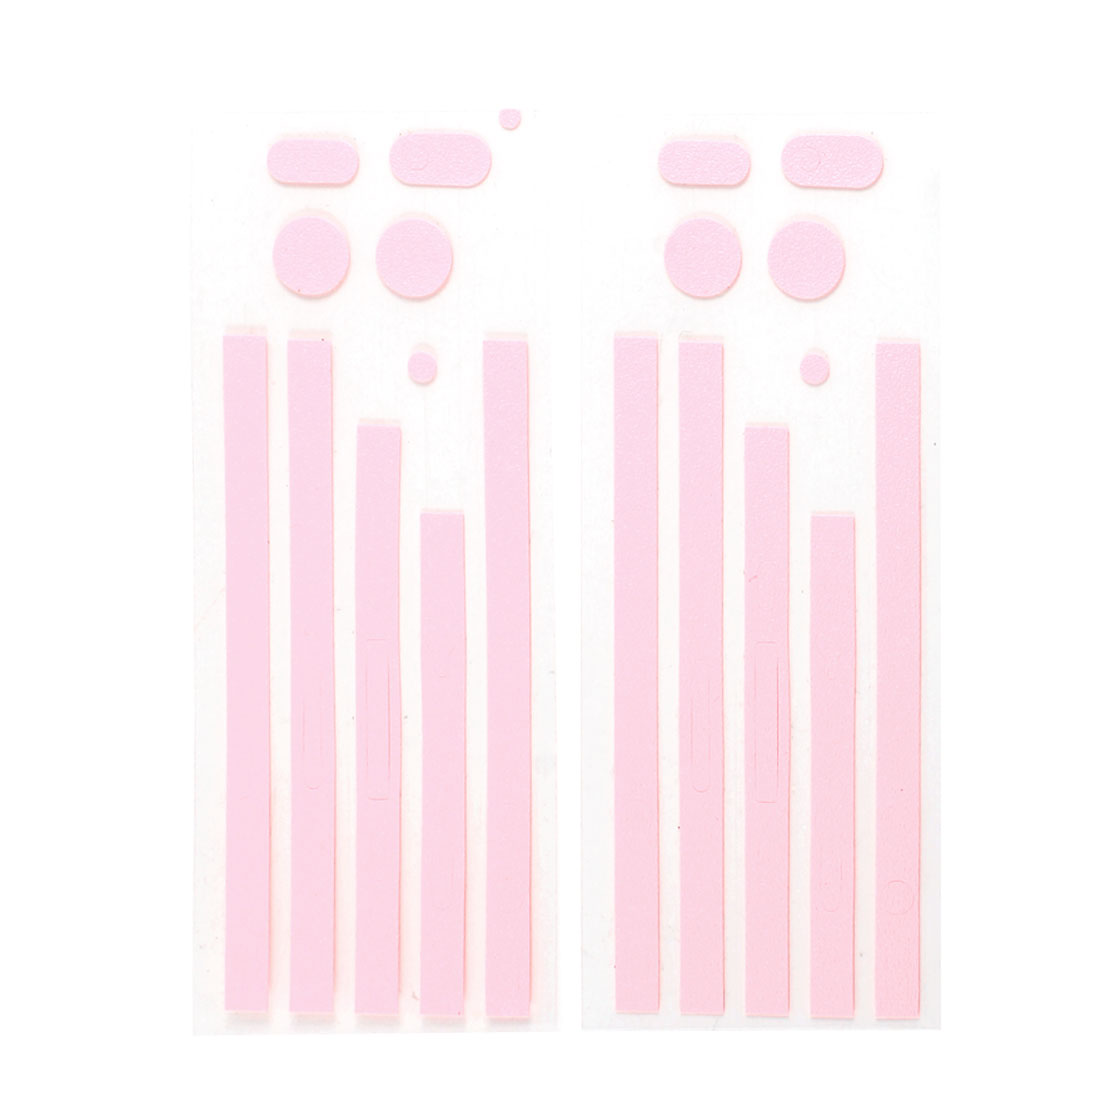 2 Pcs Pink Front Back Side Wrap Decal Skin Edge Sticker Set for iPhone 4 4G 4S